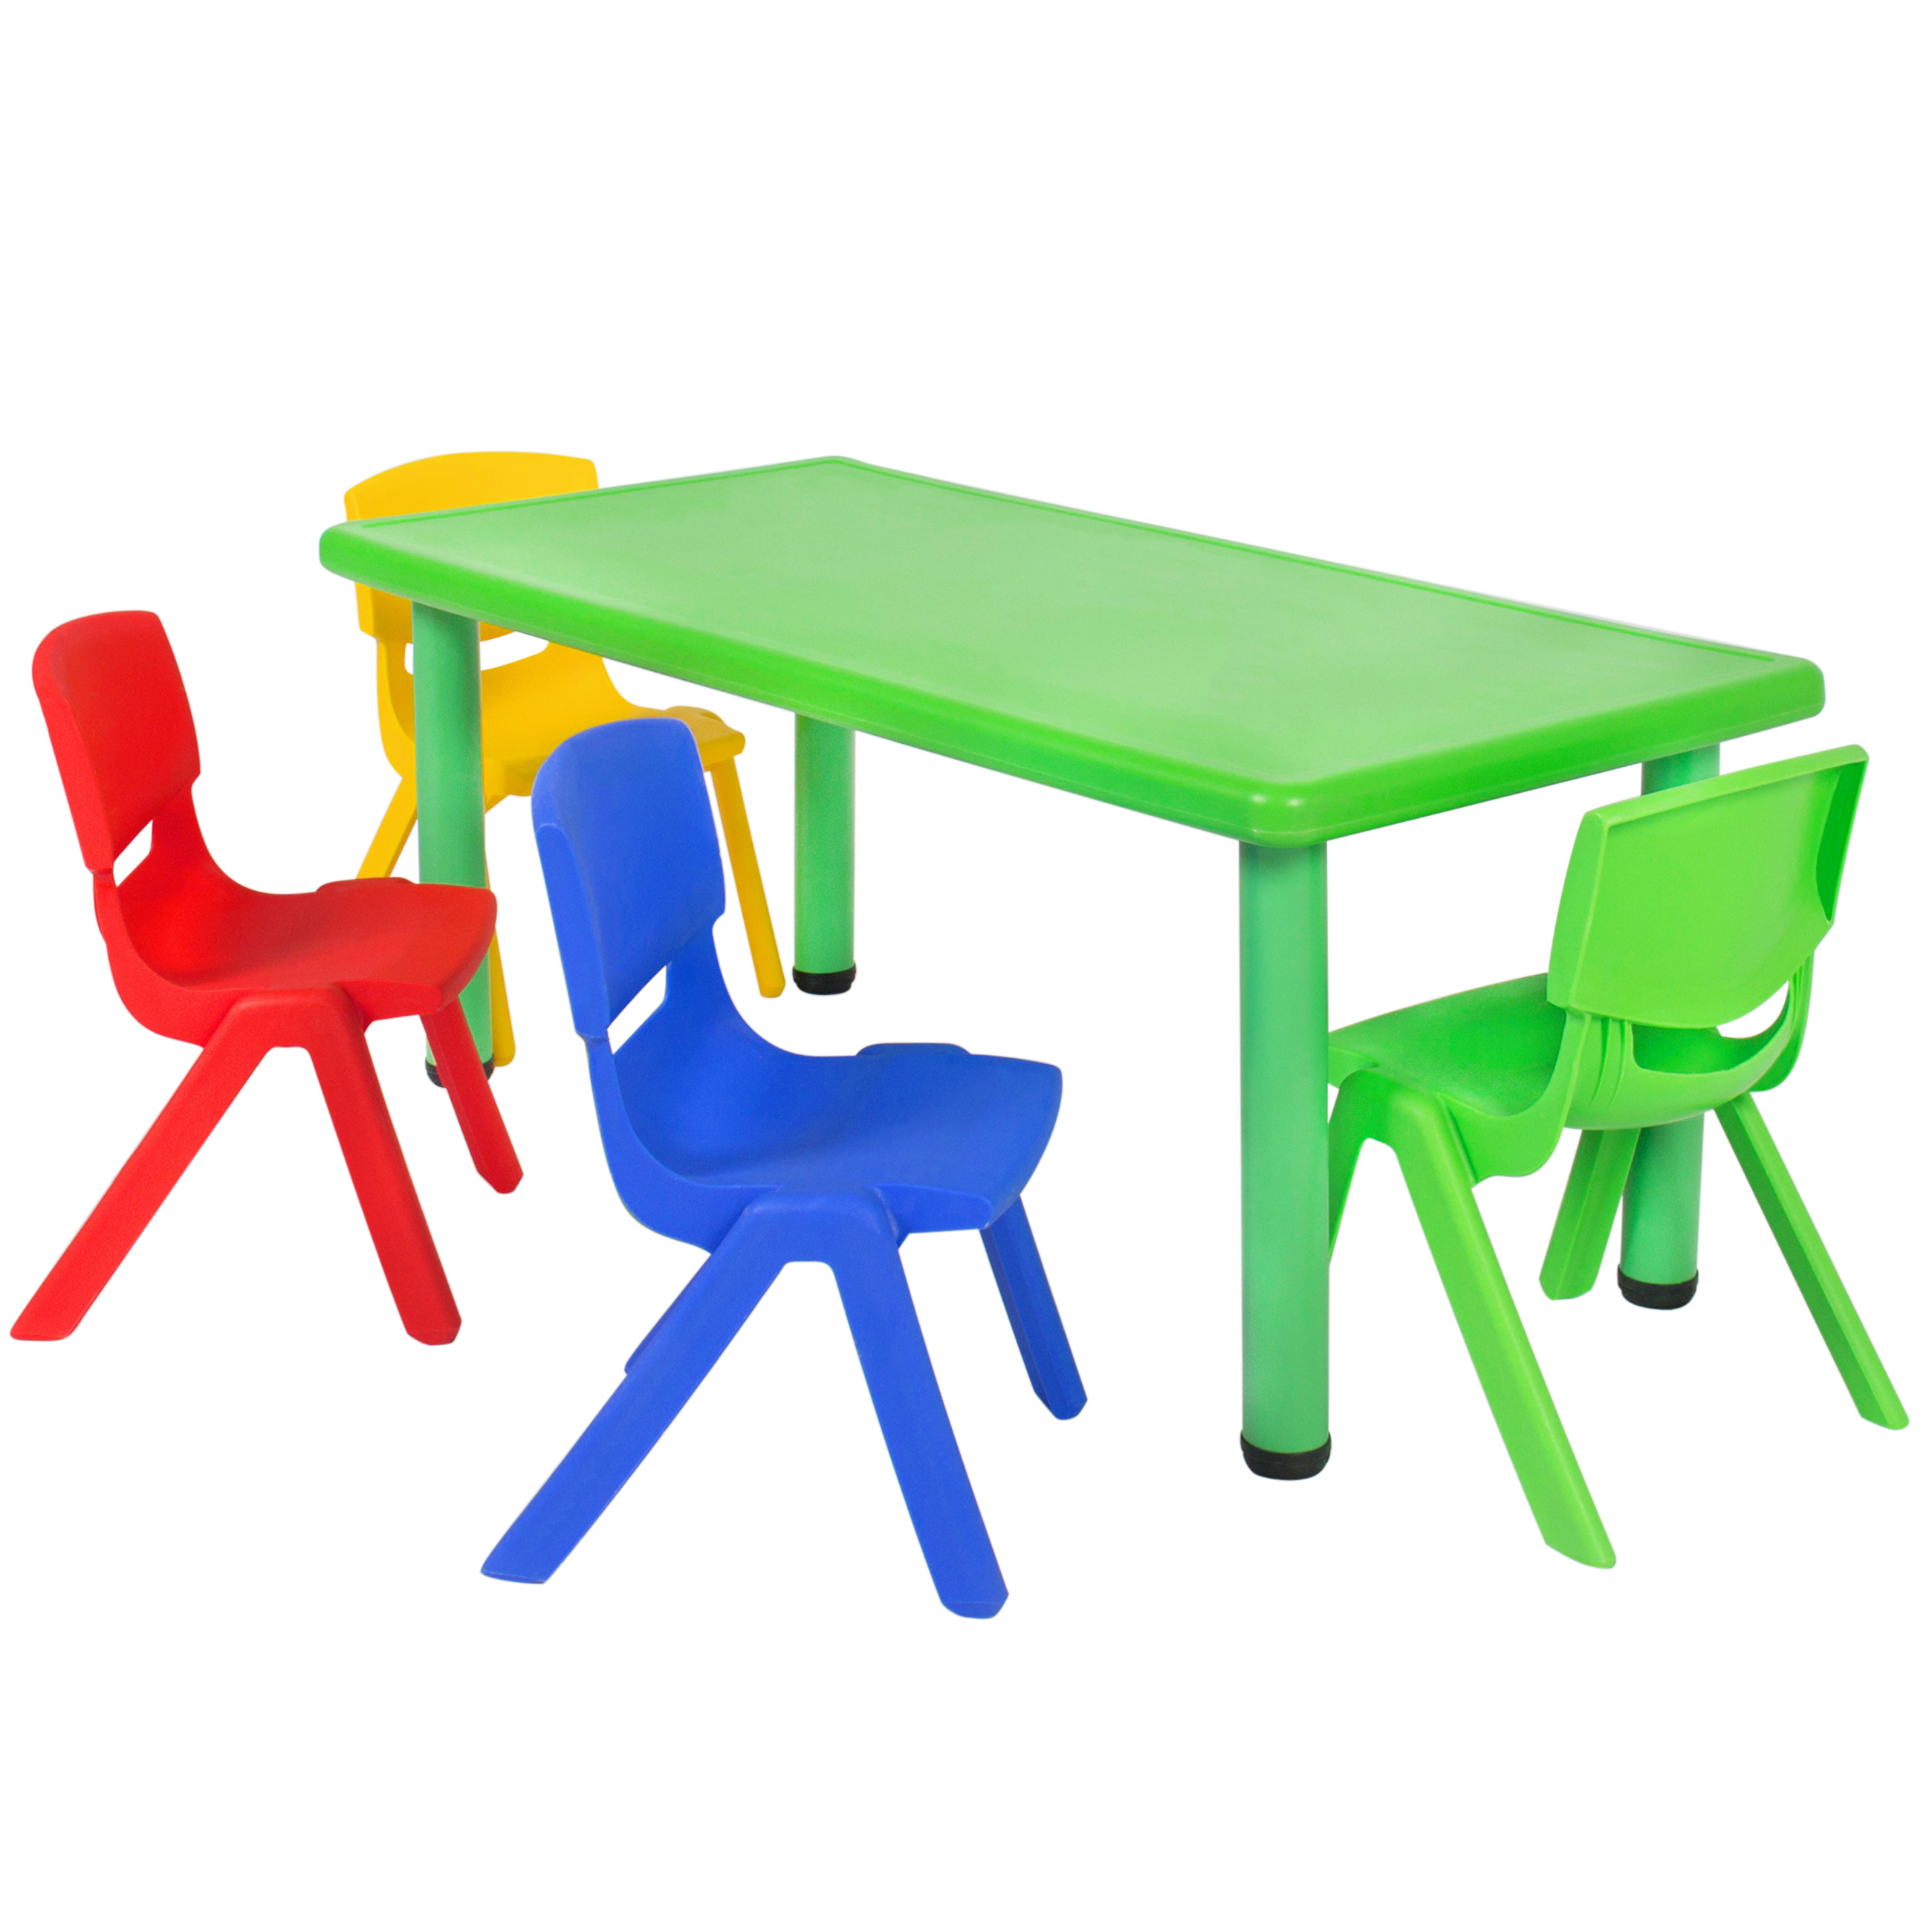 chairs for kids room oversized office 500lbs best choice products 5 piece plastic play furniture activity table set w 4 home school fun multicolor walmart com